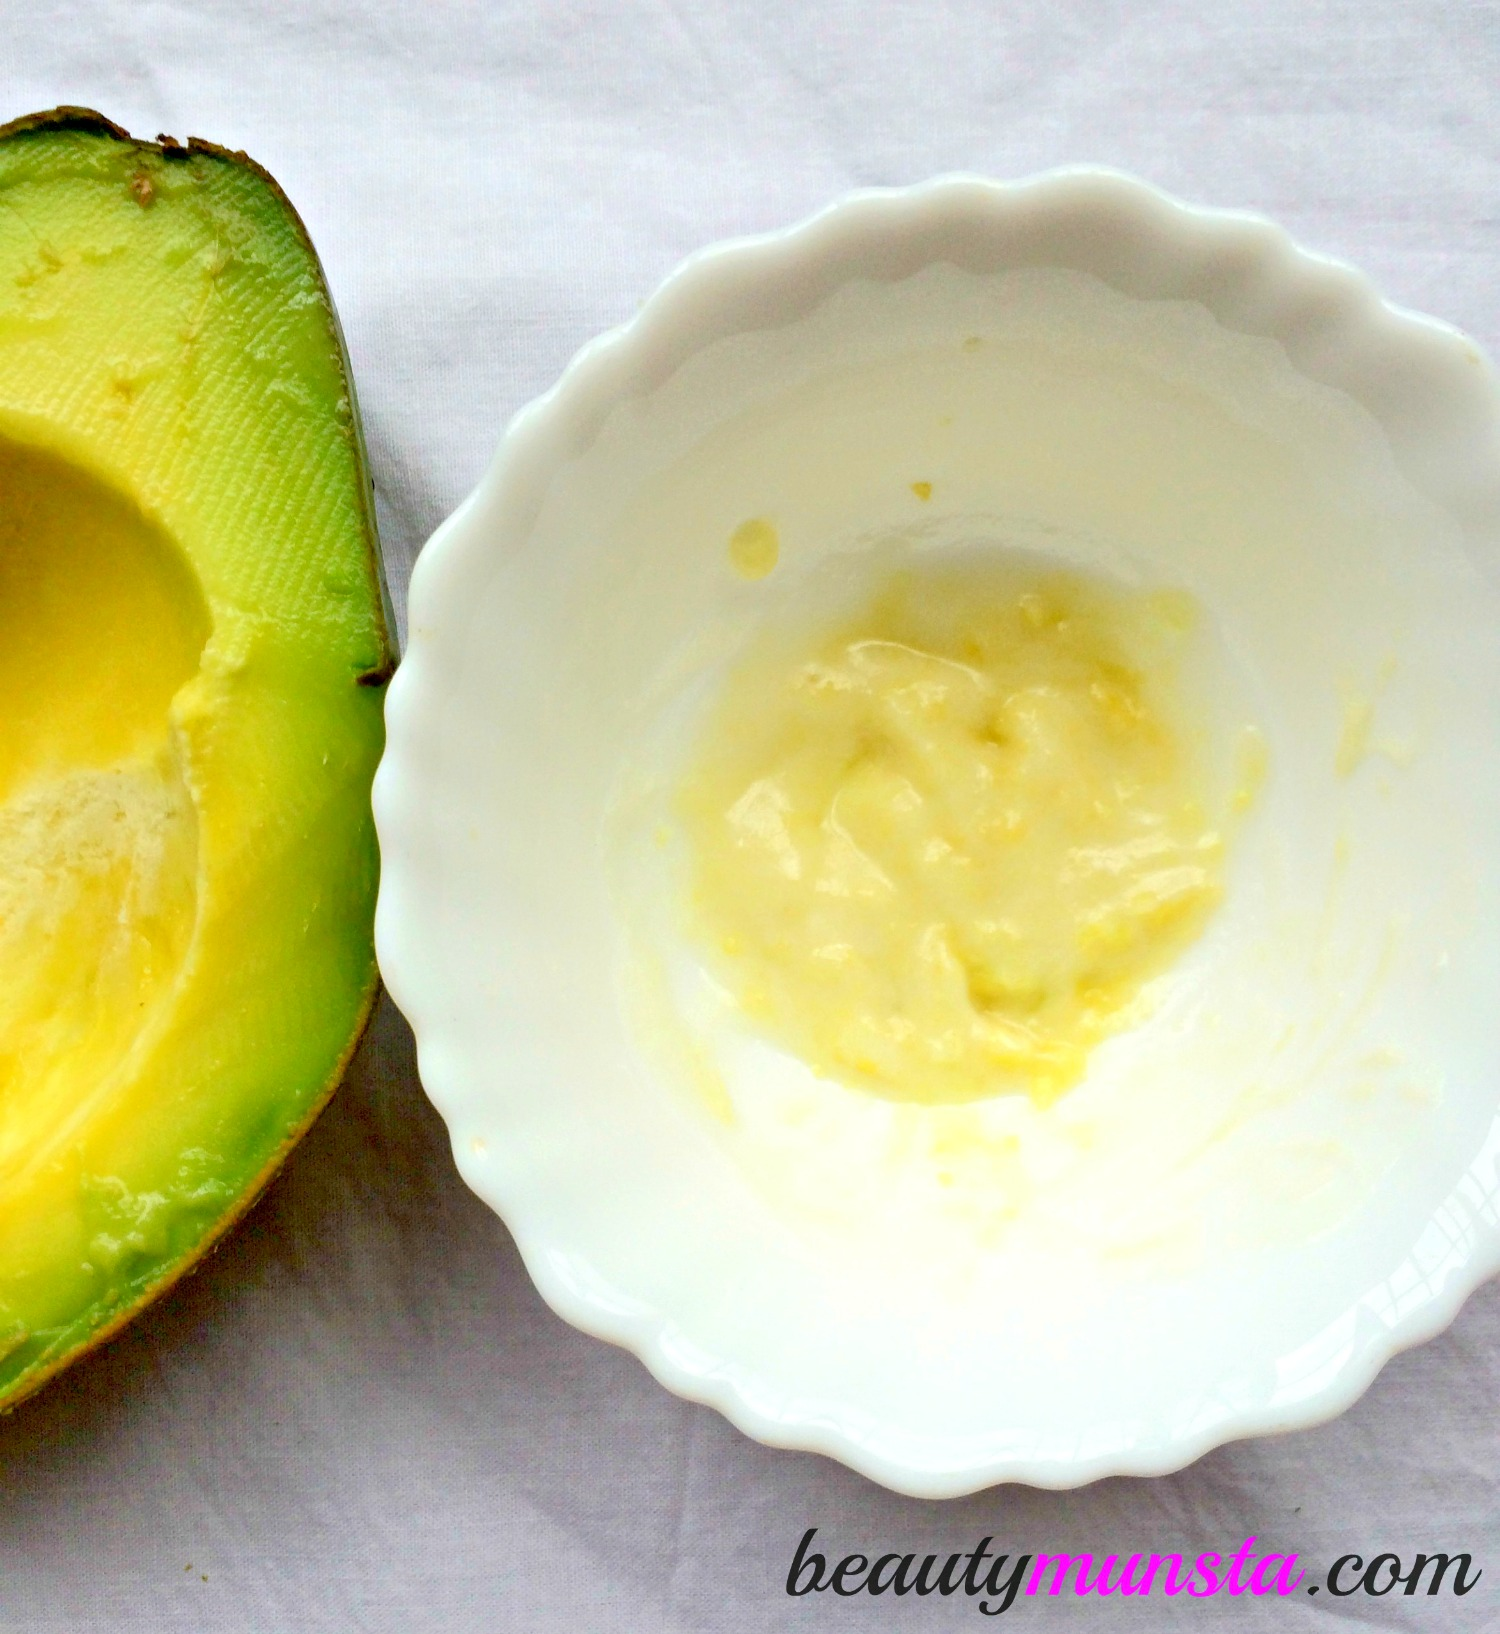 Slather this goodness onto your face for beautiful skin!